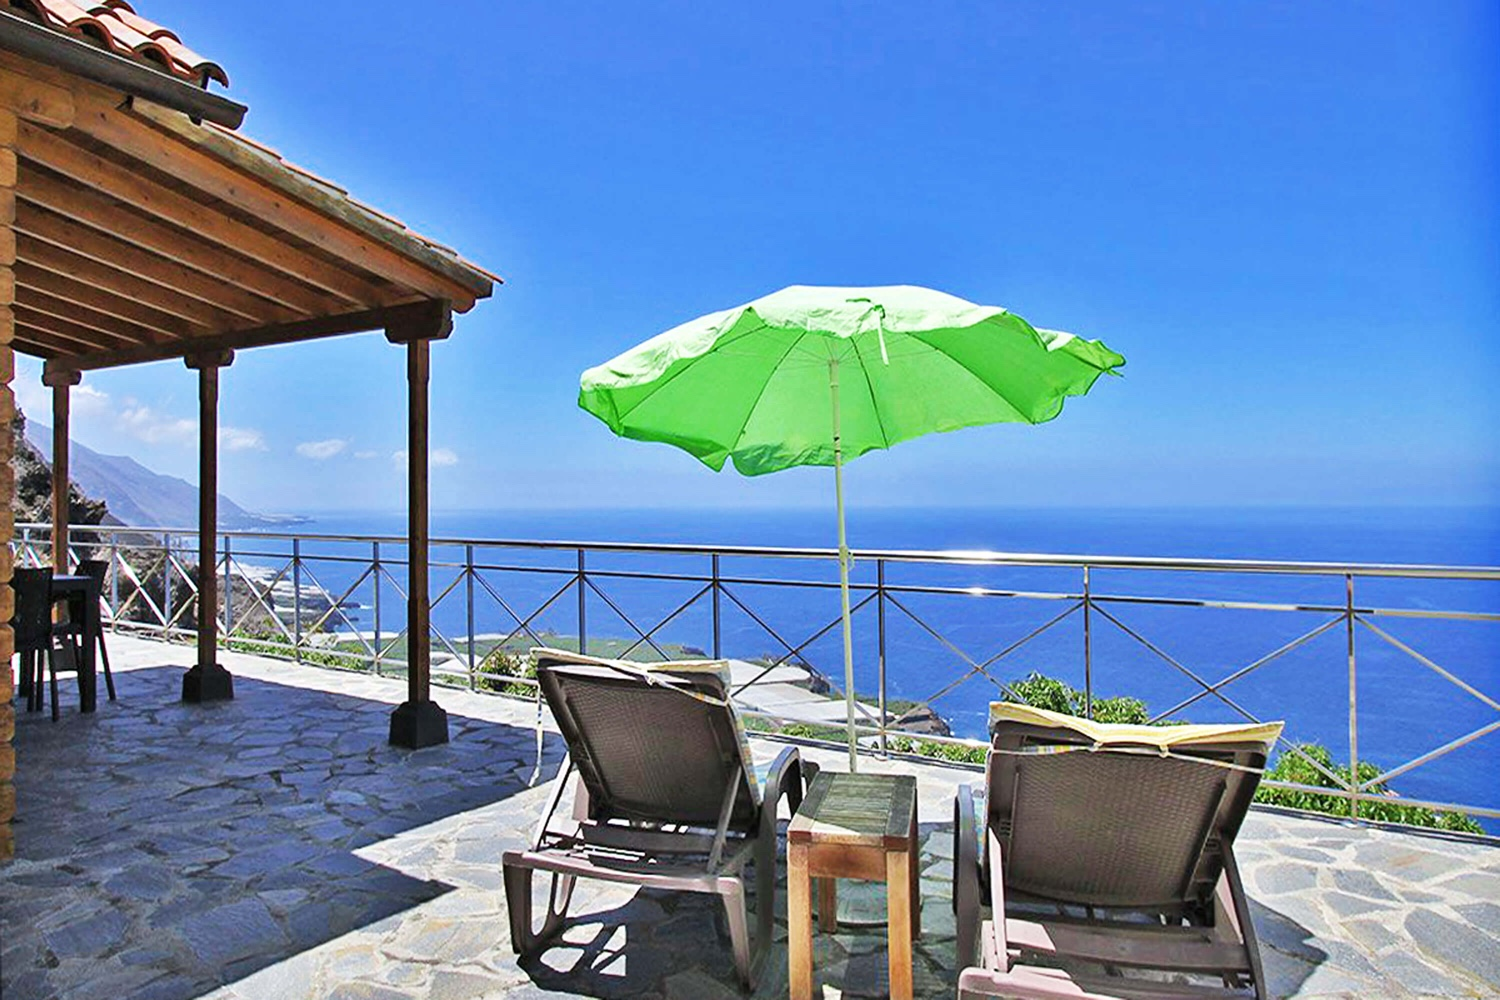 Nicely equipped bungalow for 4 people with community pool and sea views for a relaxing holiday in Puerto Naos